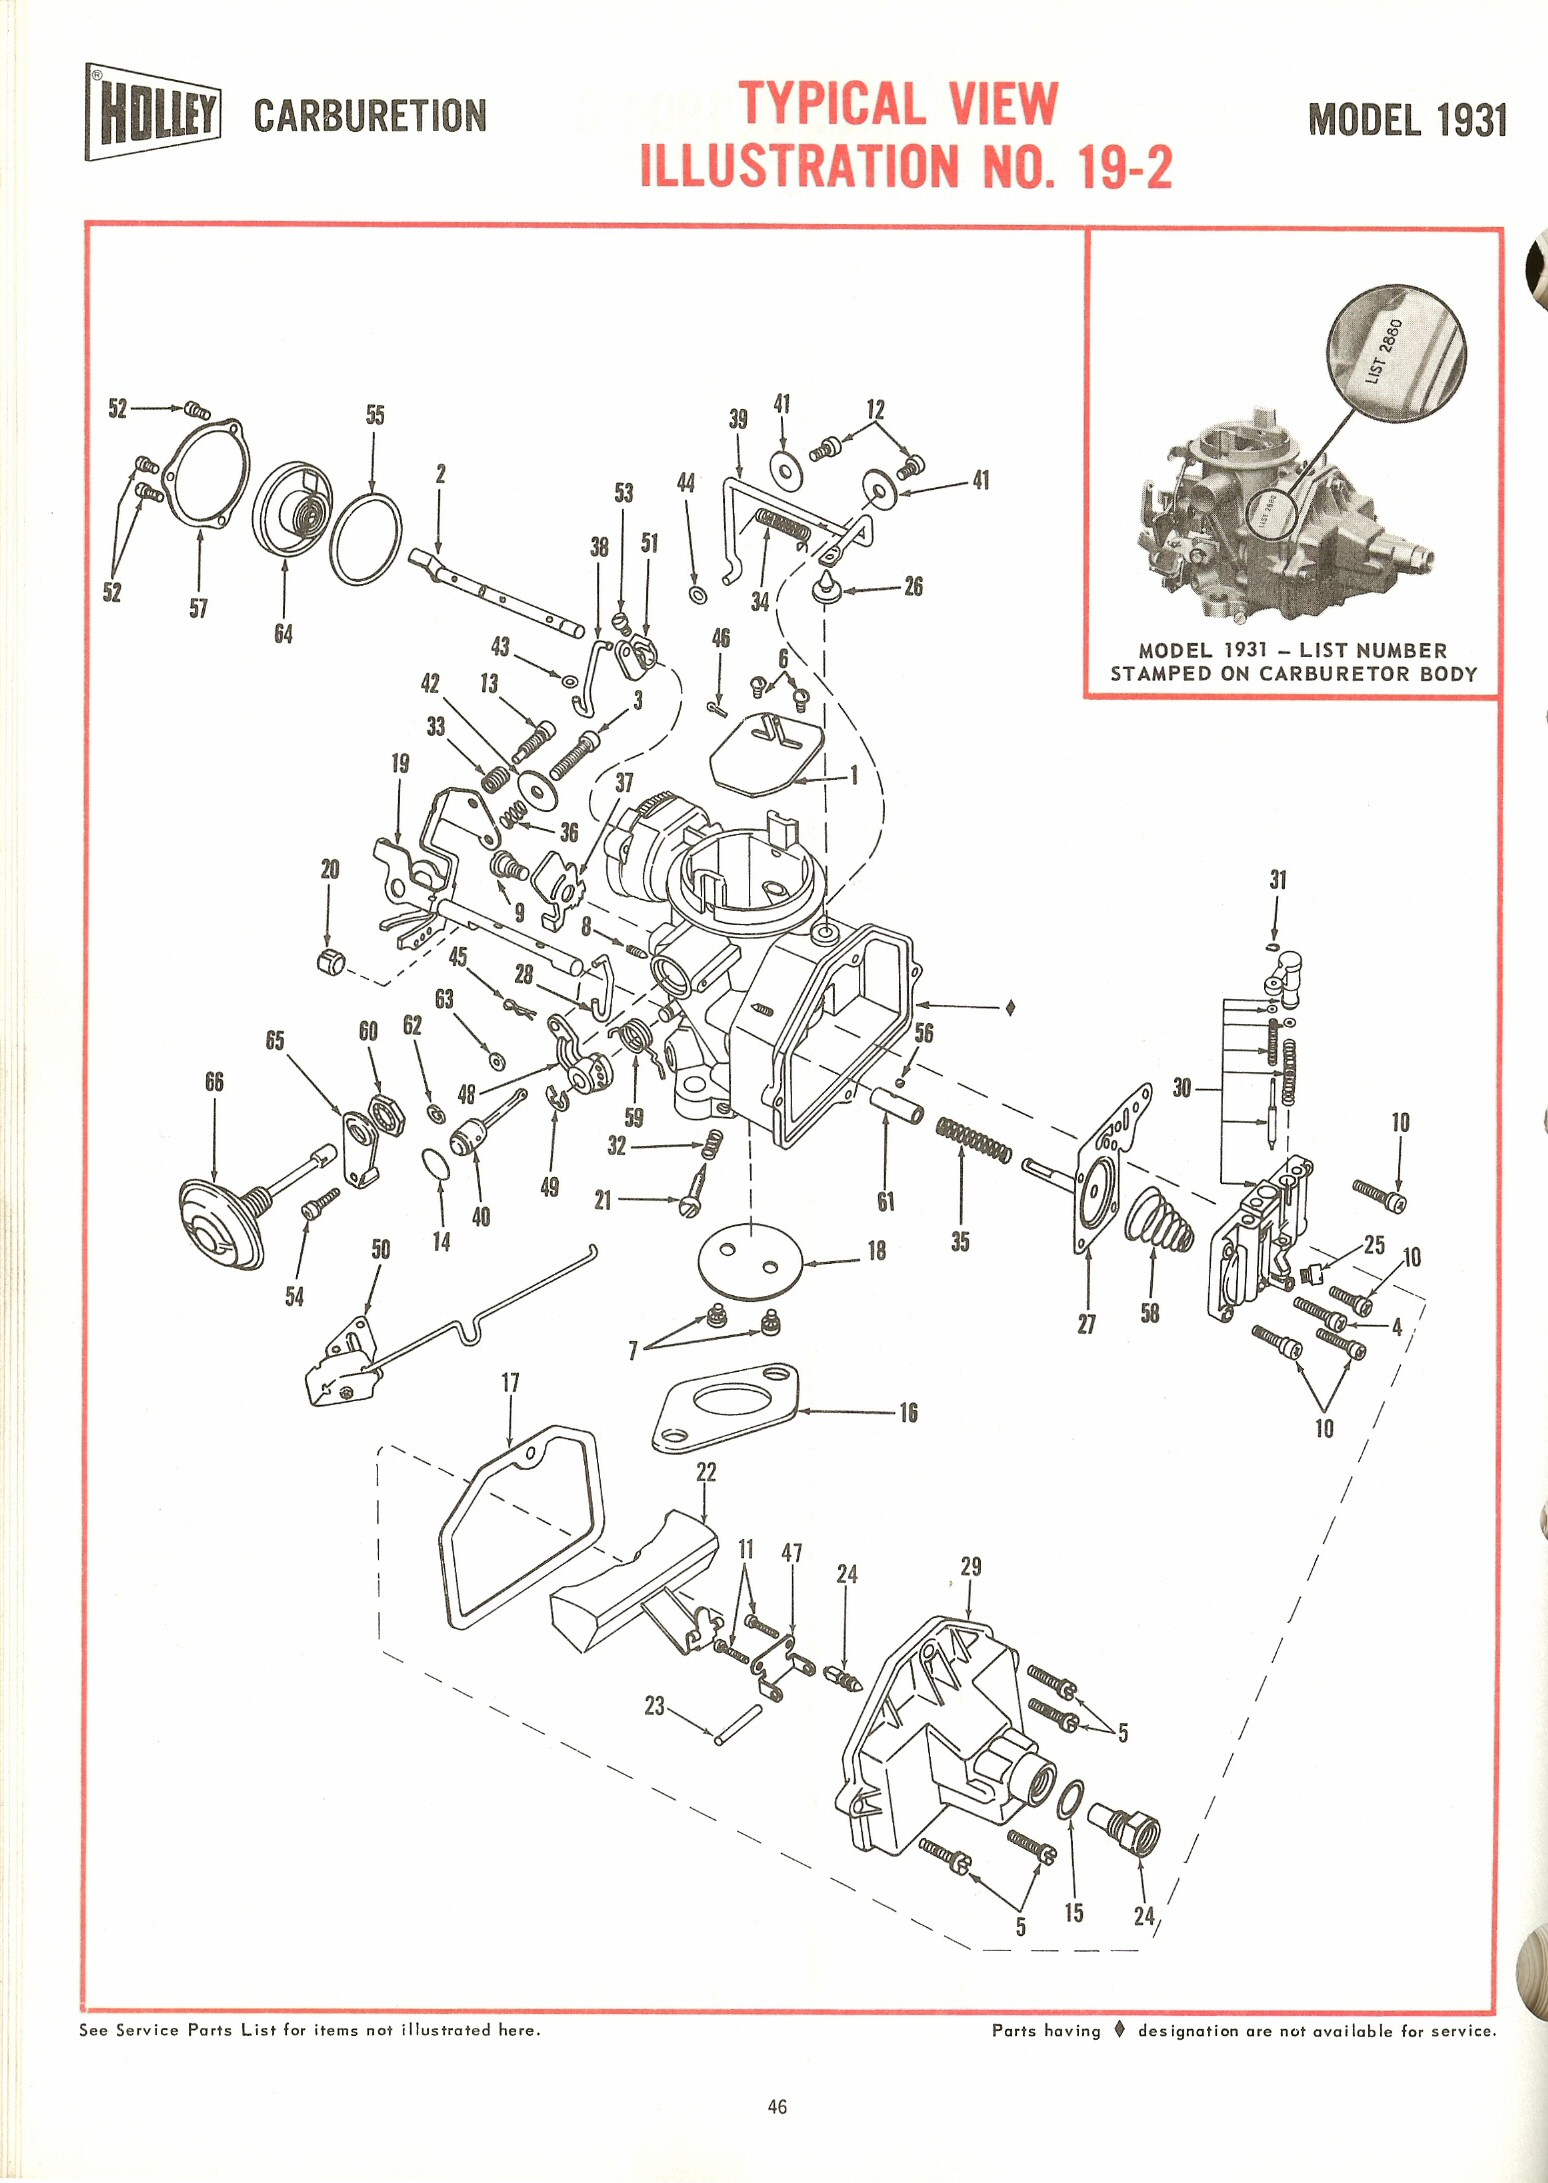 Holley Carburetors Diagrams Exploded 1909 The Old Car Manual Project